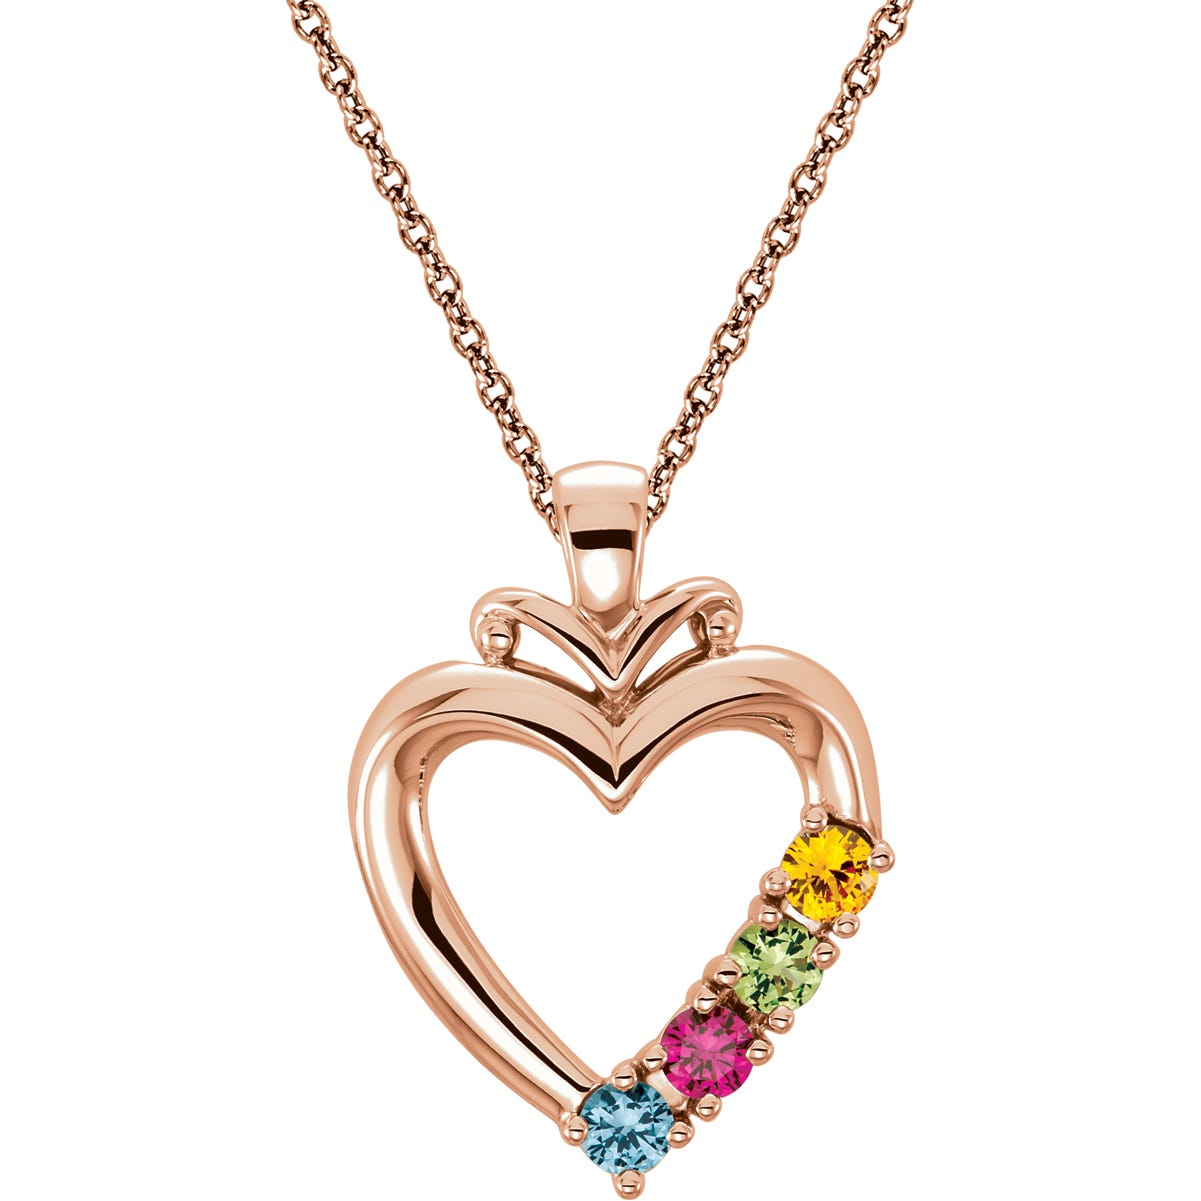 4-Stone Family Heart Pendant in 10k Rose Gold